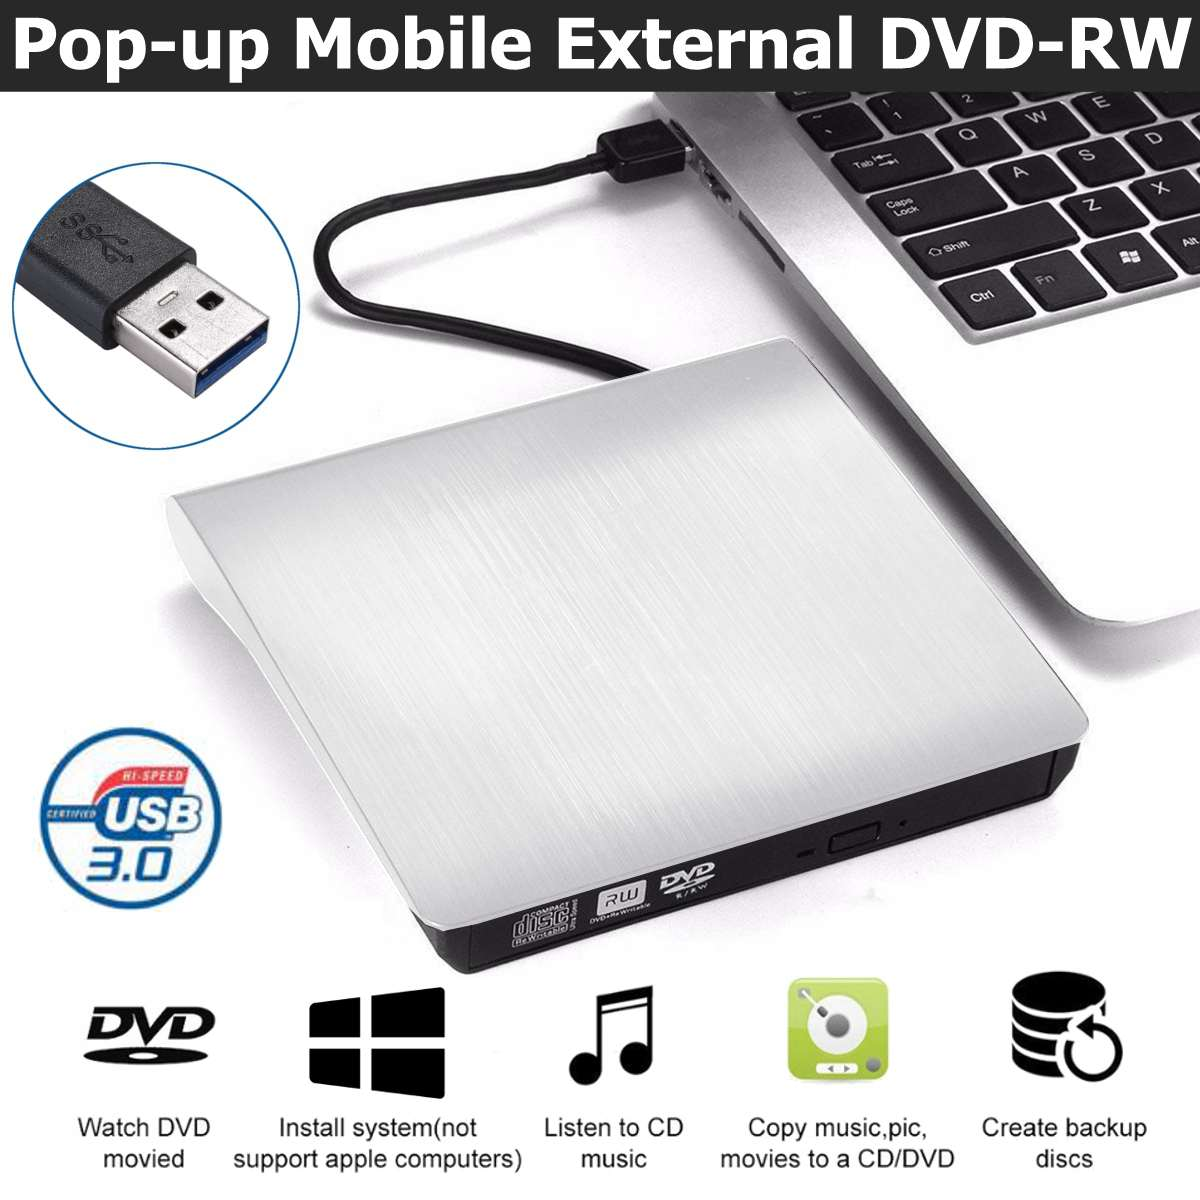 New Design White USB 3.0 Slim External DVD RW CD Writer Drive Burner Reader Player Optical Drives For Laptop PC